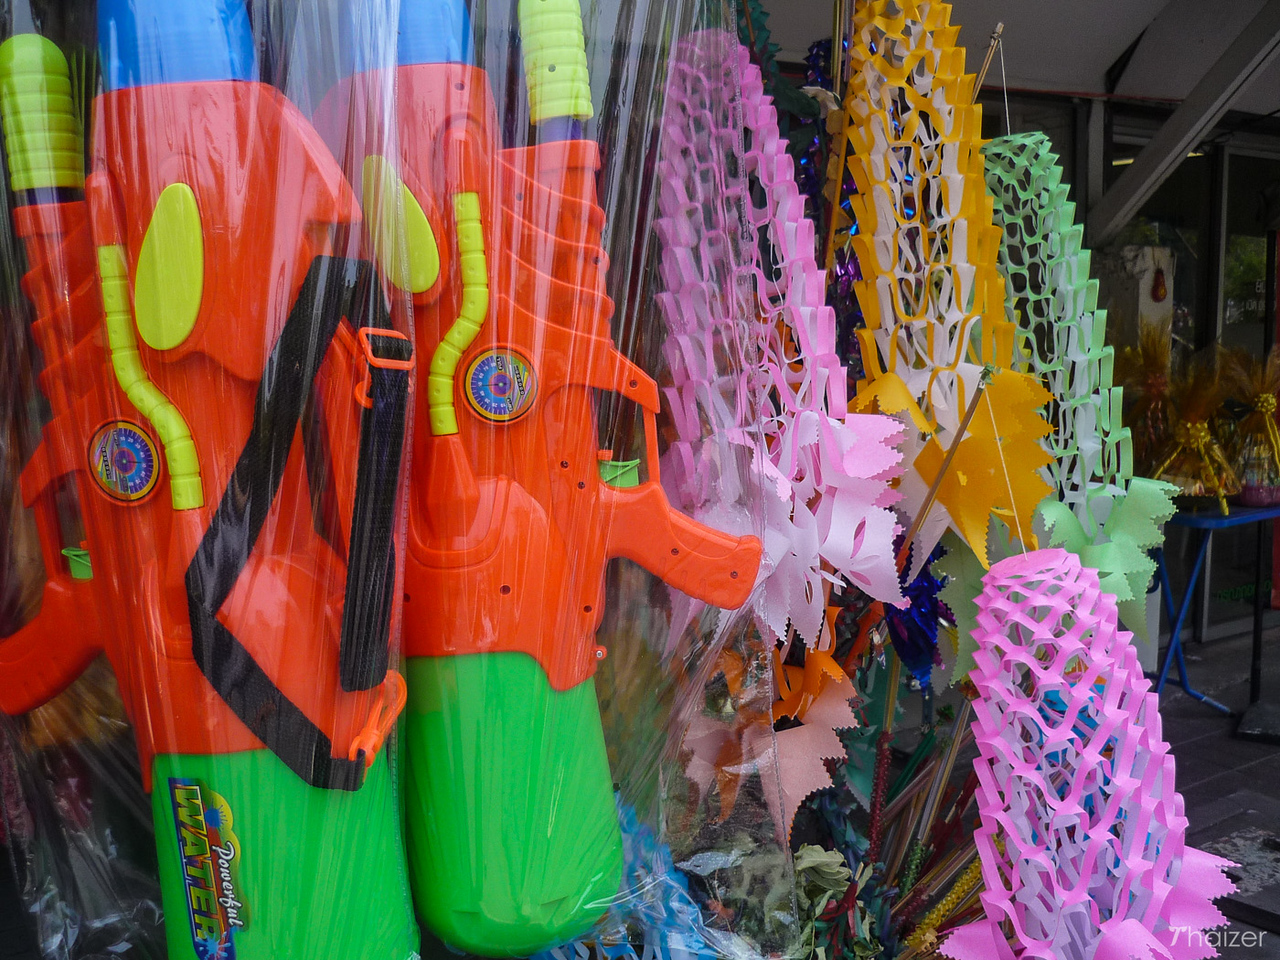 Songkran water pistols